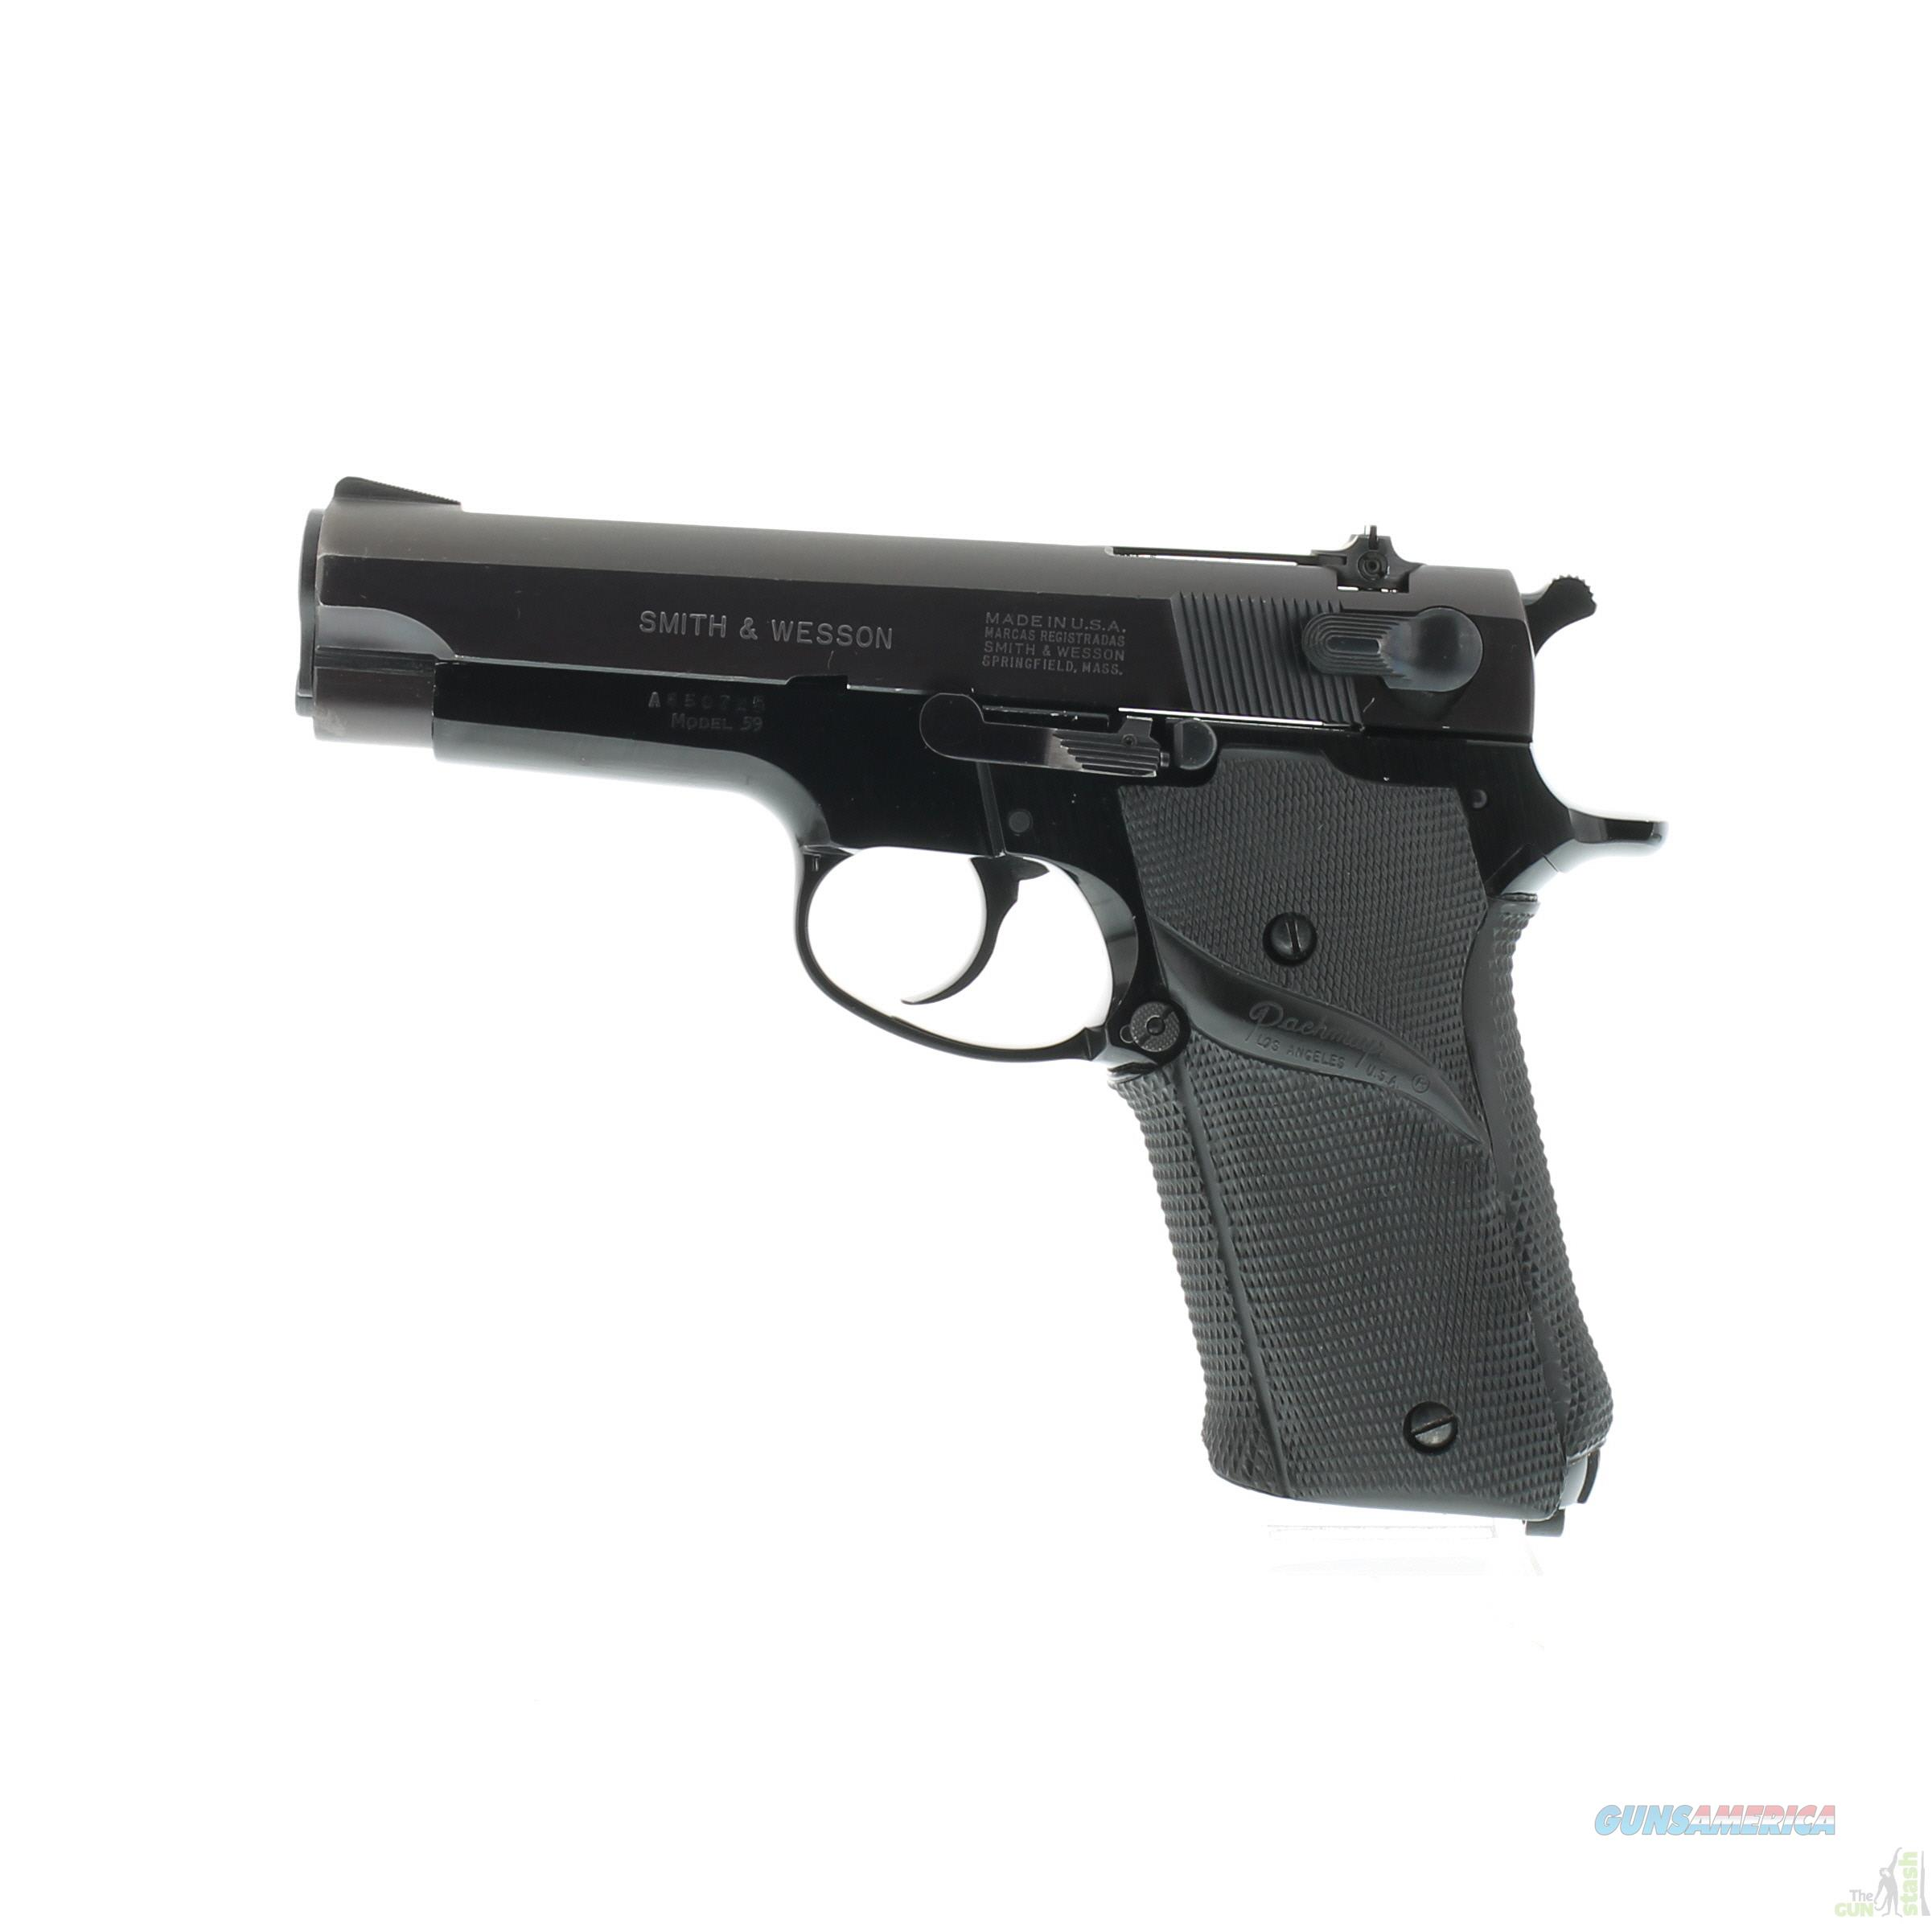 Smith & Wesson Model 59 - 9mm  Guns > Pistols > Smith & Wesson Pistols - Autos > Steel Frame